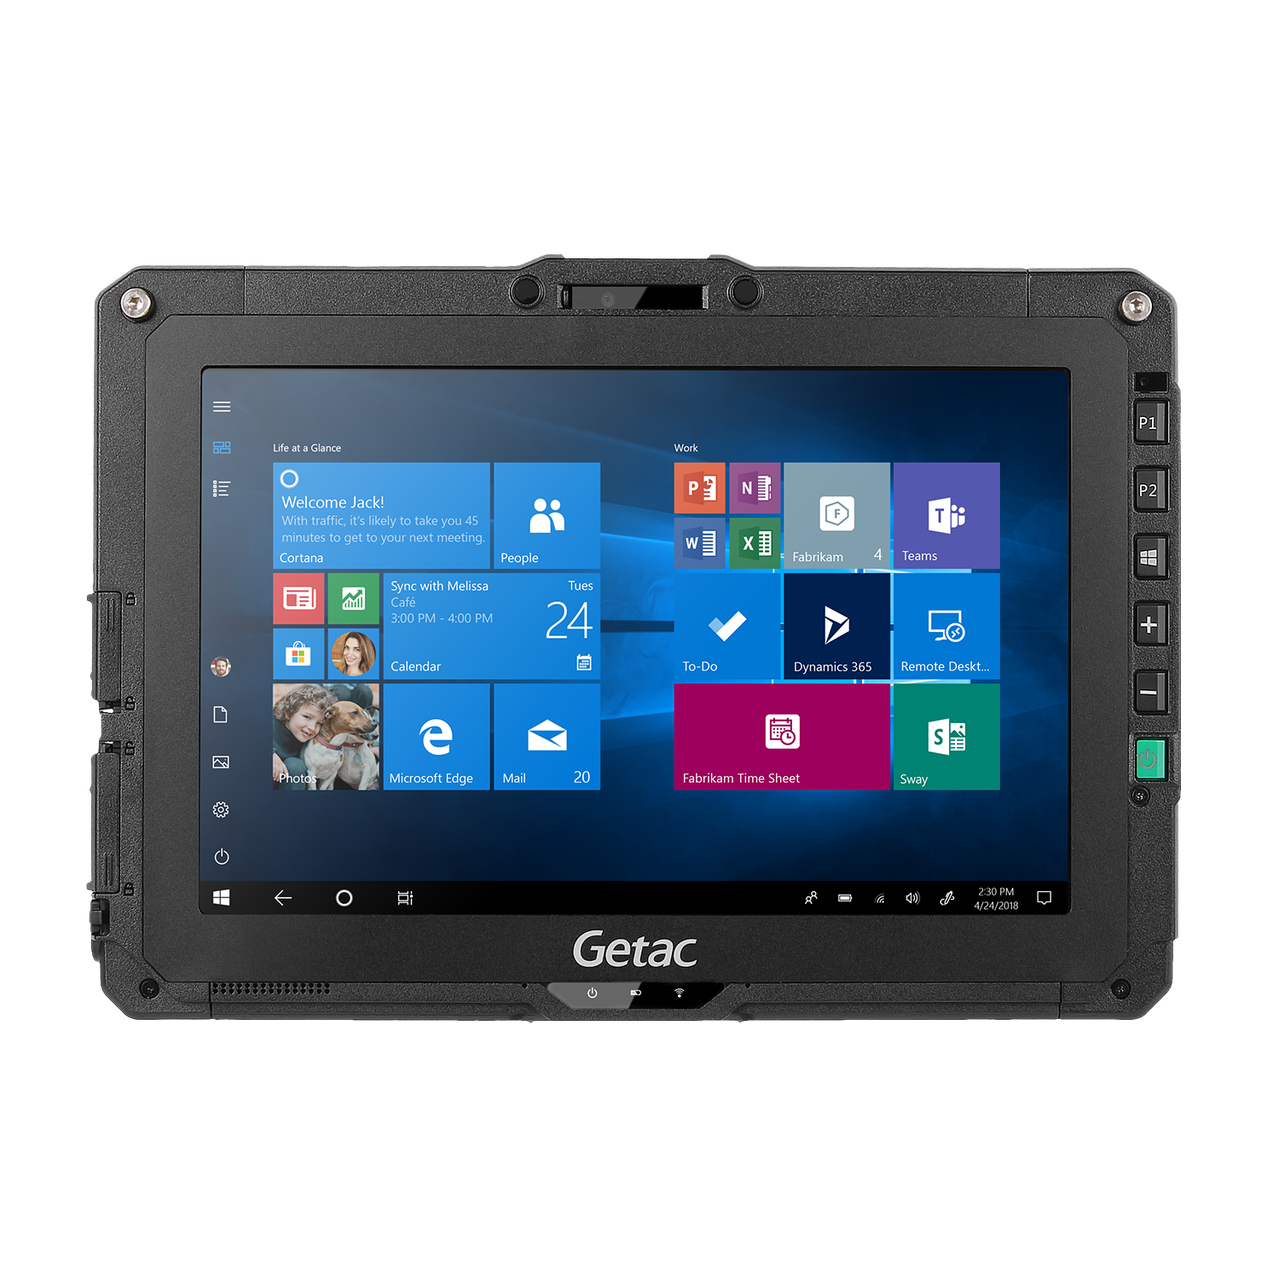 Getac UX10,Intel Core i5-8265U Processor 1.6GHz,With Webcam,Microsoft Windows 10 Pro x64 with 8GB RAM,256GB SSD,Sunlight Readable Full HD LCD + Touchscreen + Hard Tip stylus + Rear Camera,AC Adapter + US Power Cord,Wifi + BT,1D/2D Imager Barcode Read